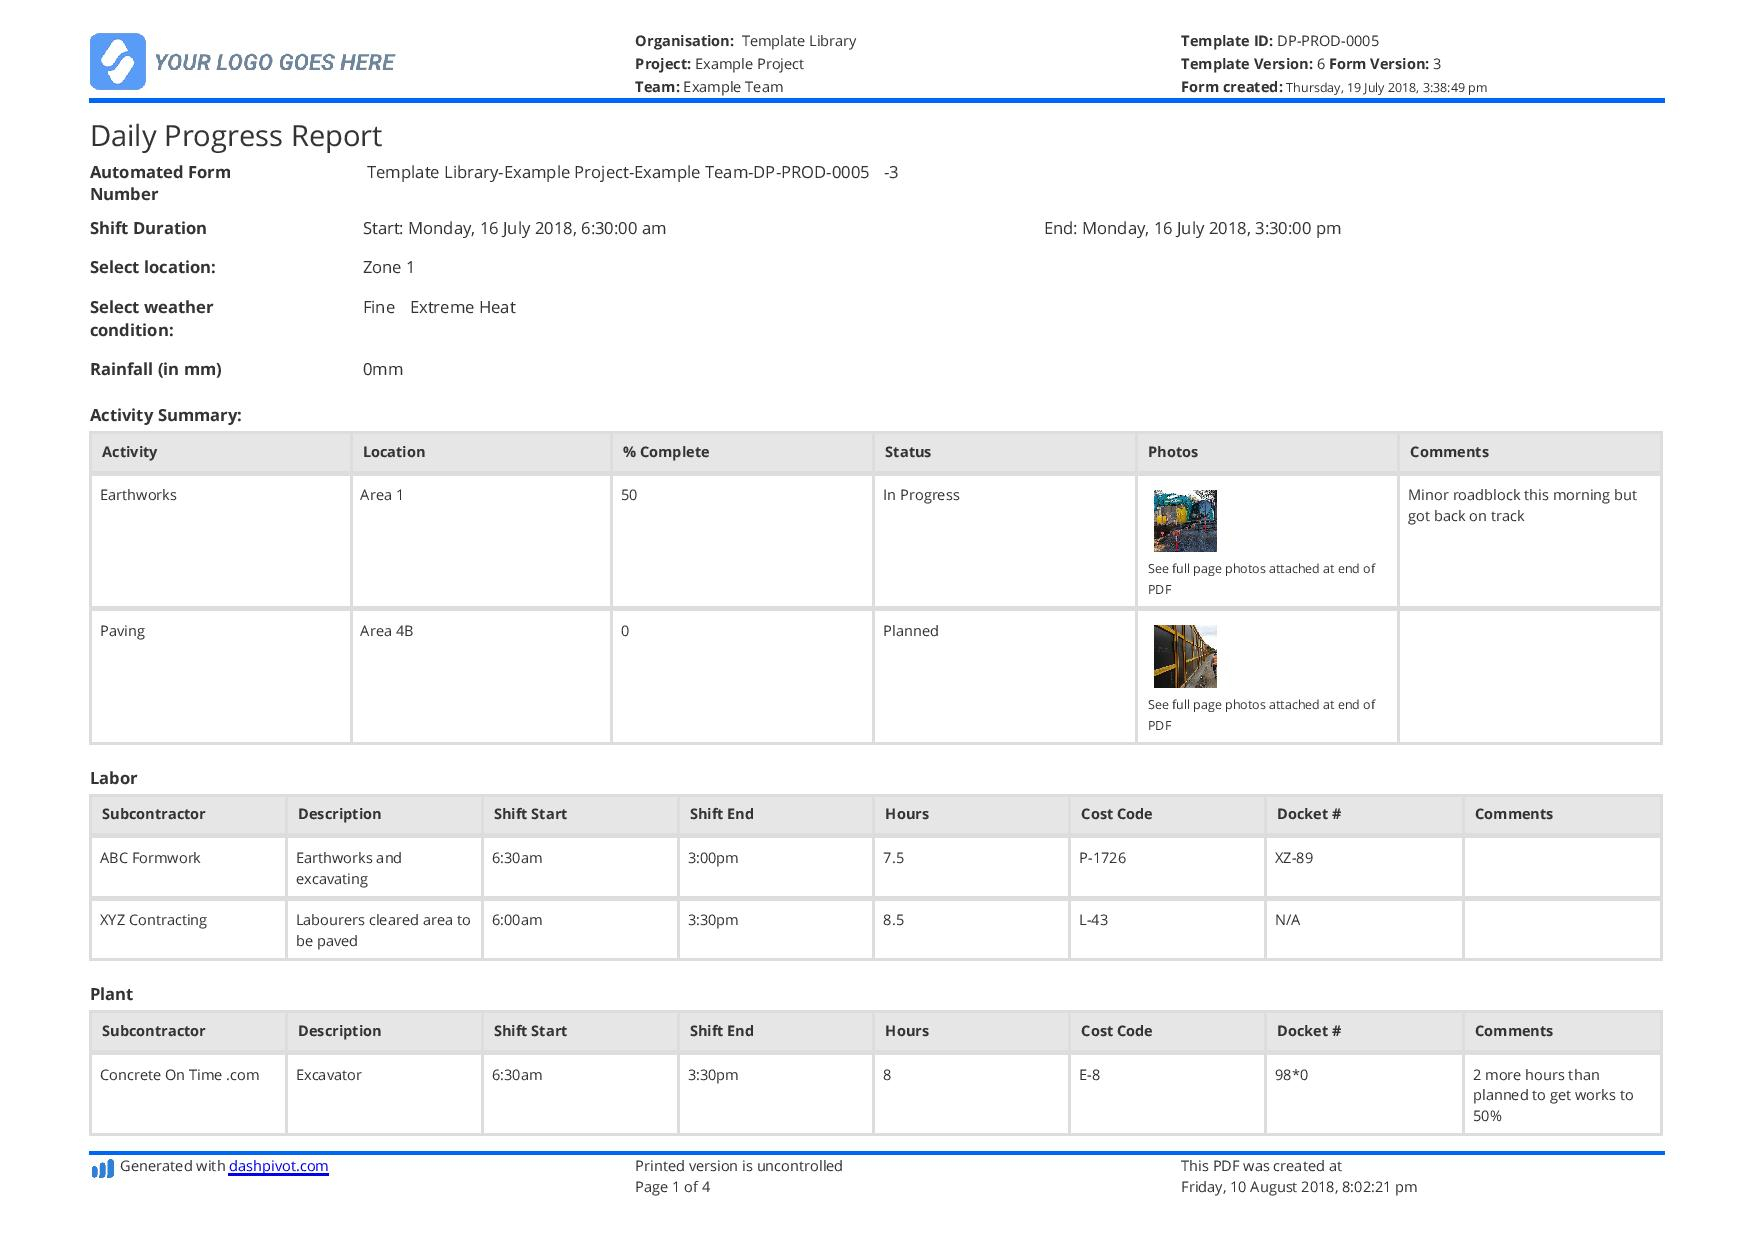 Construction Work In Progress Spreadsheet For Free Construction Daily Report Template Better Than Excel Or Word